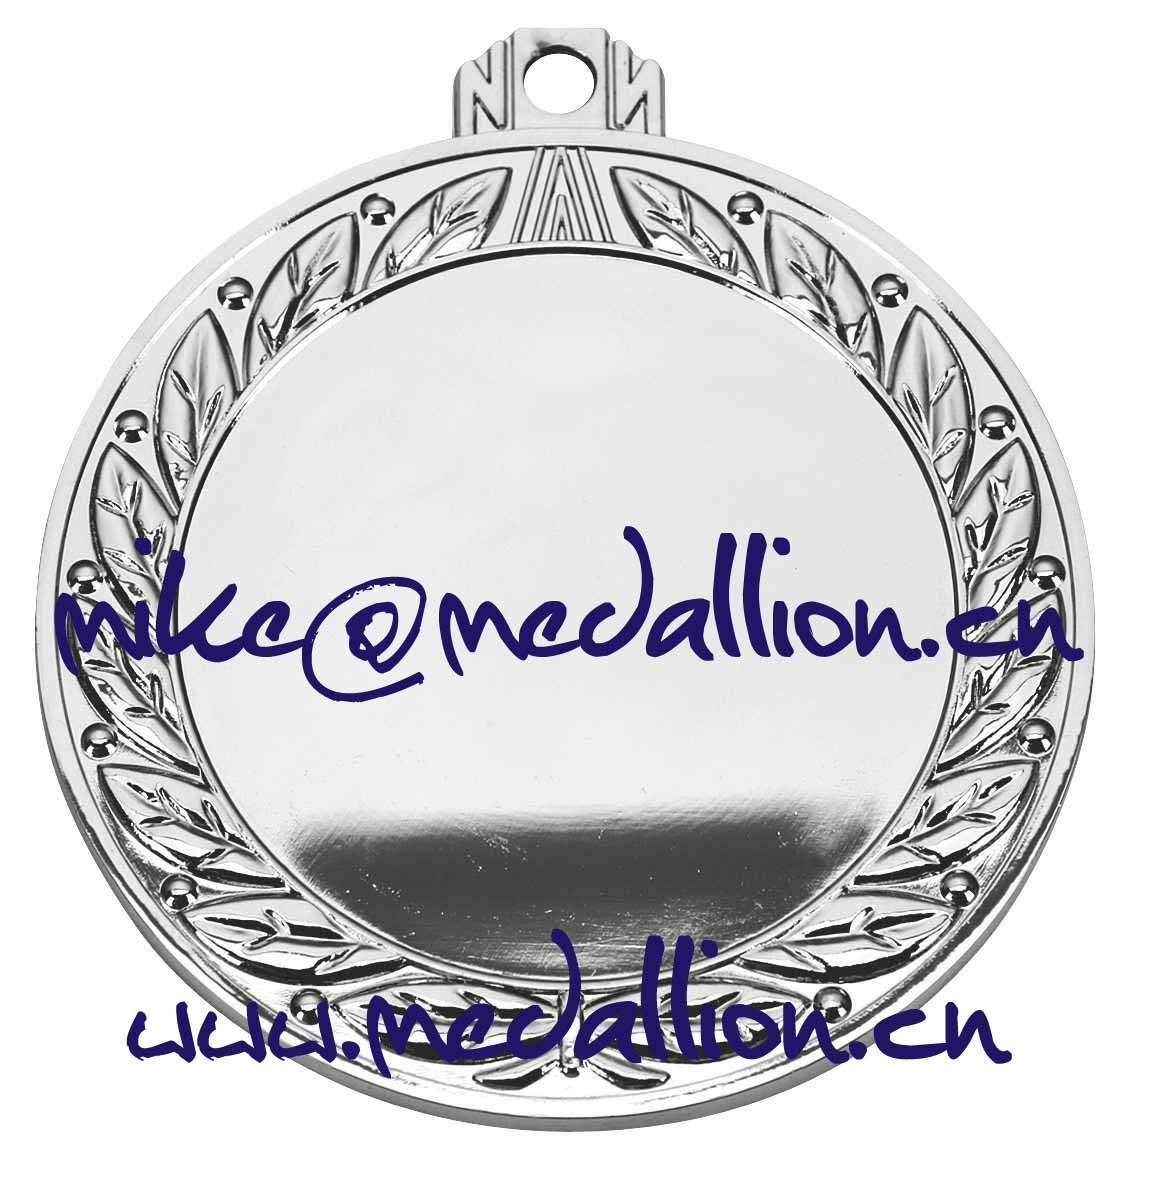 Shiny slver plated round blank medal